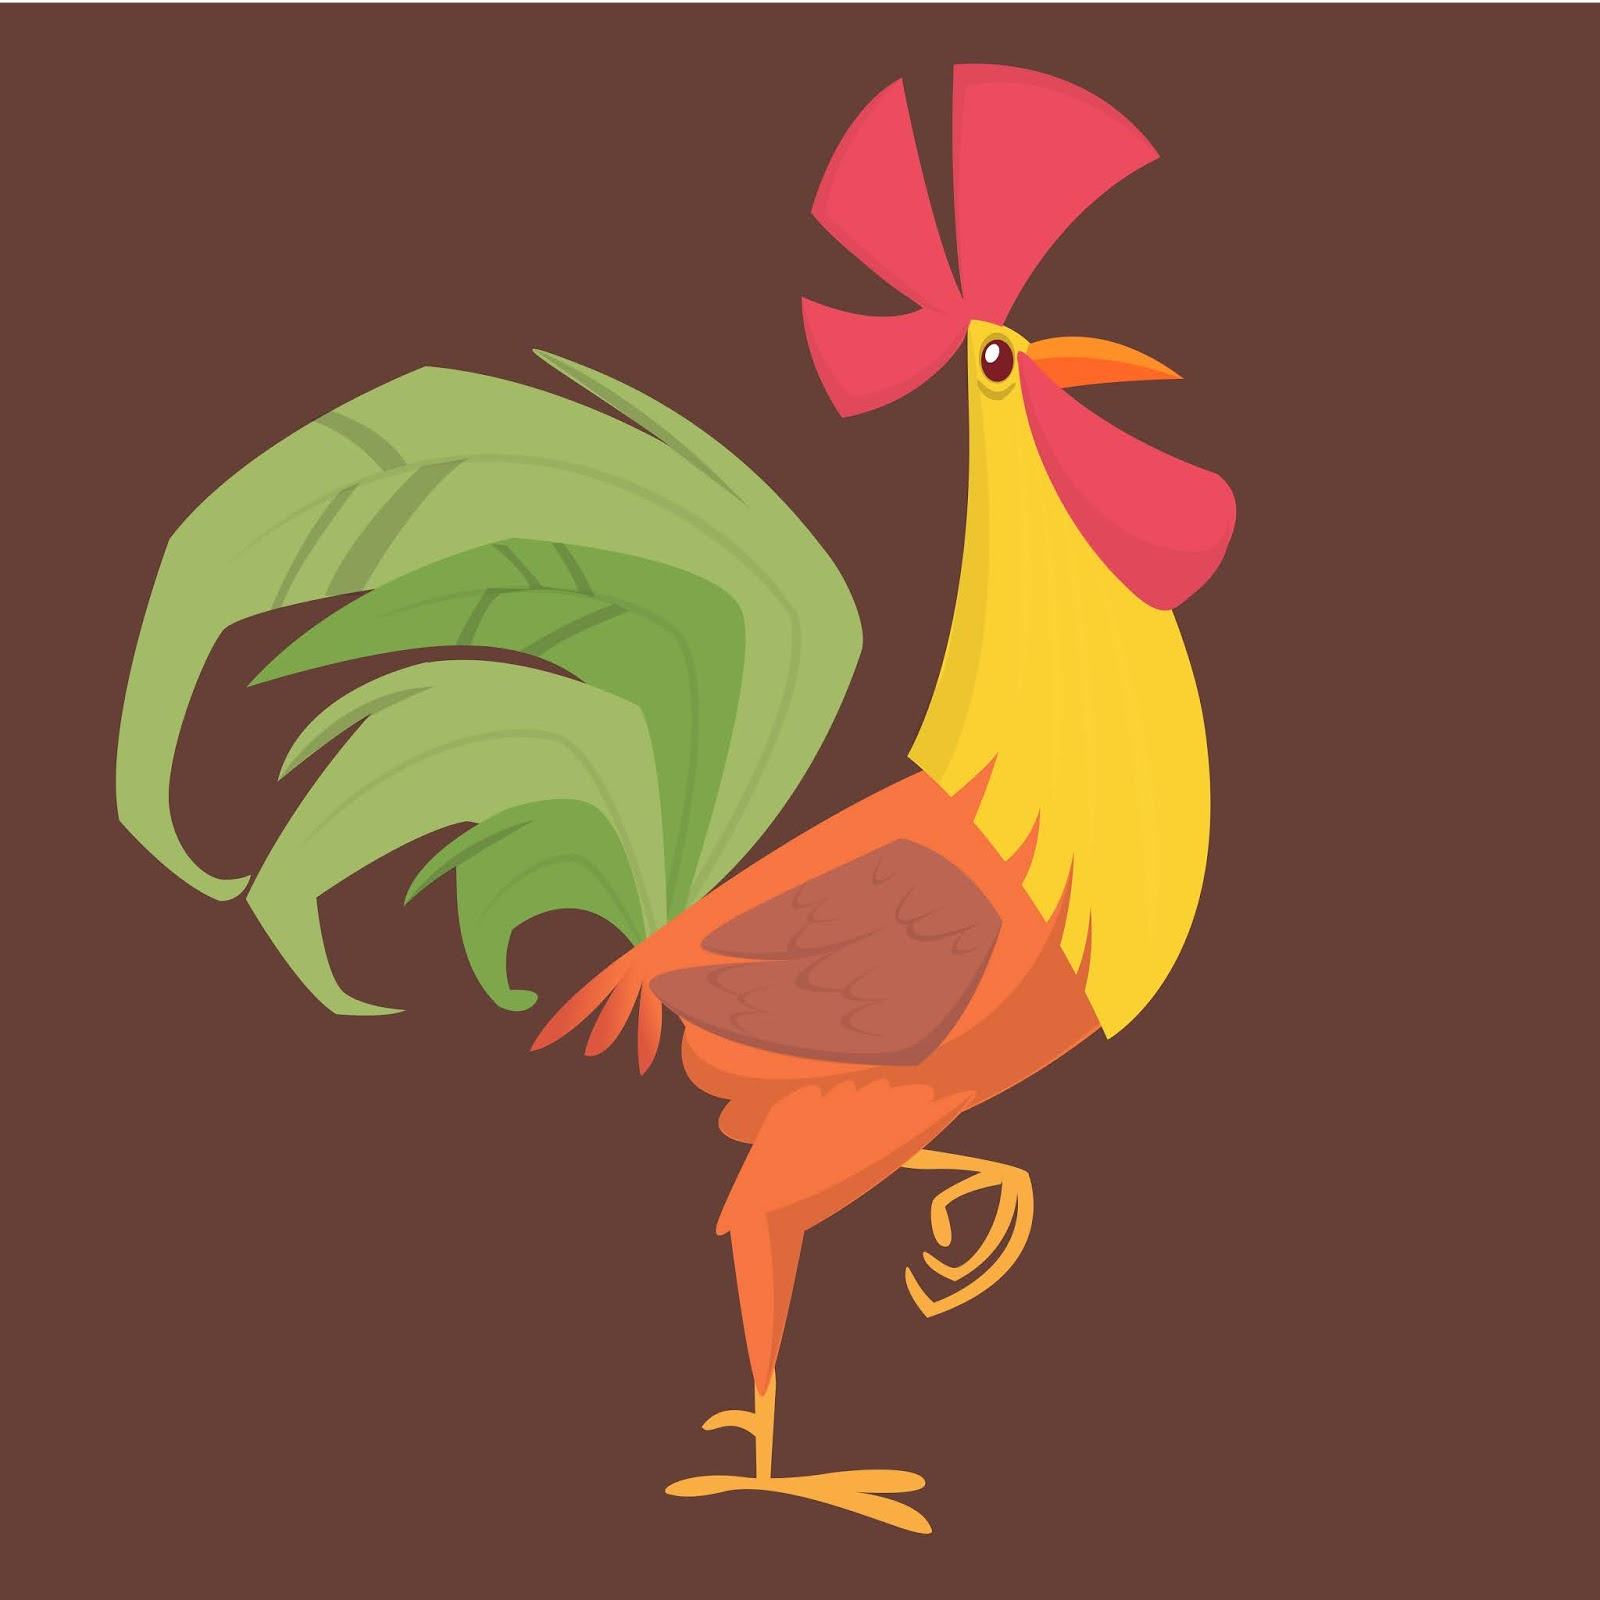 Cartoon Rooster Free Download Vector CDR, AI, EPS and PNG Formats